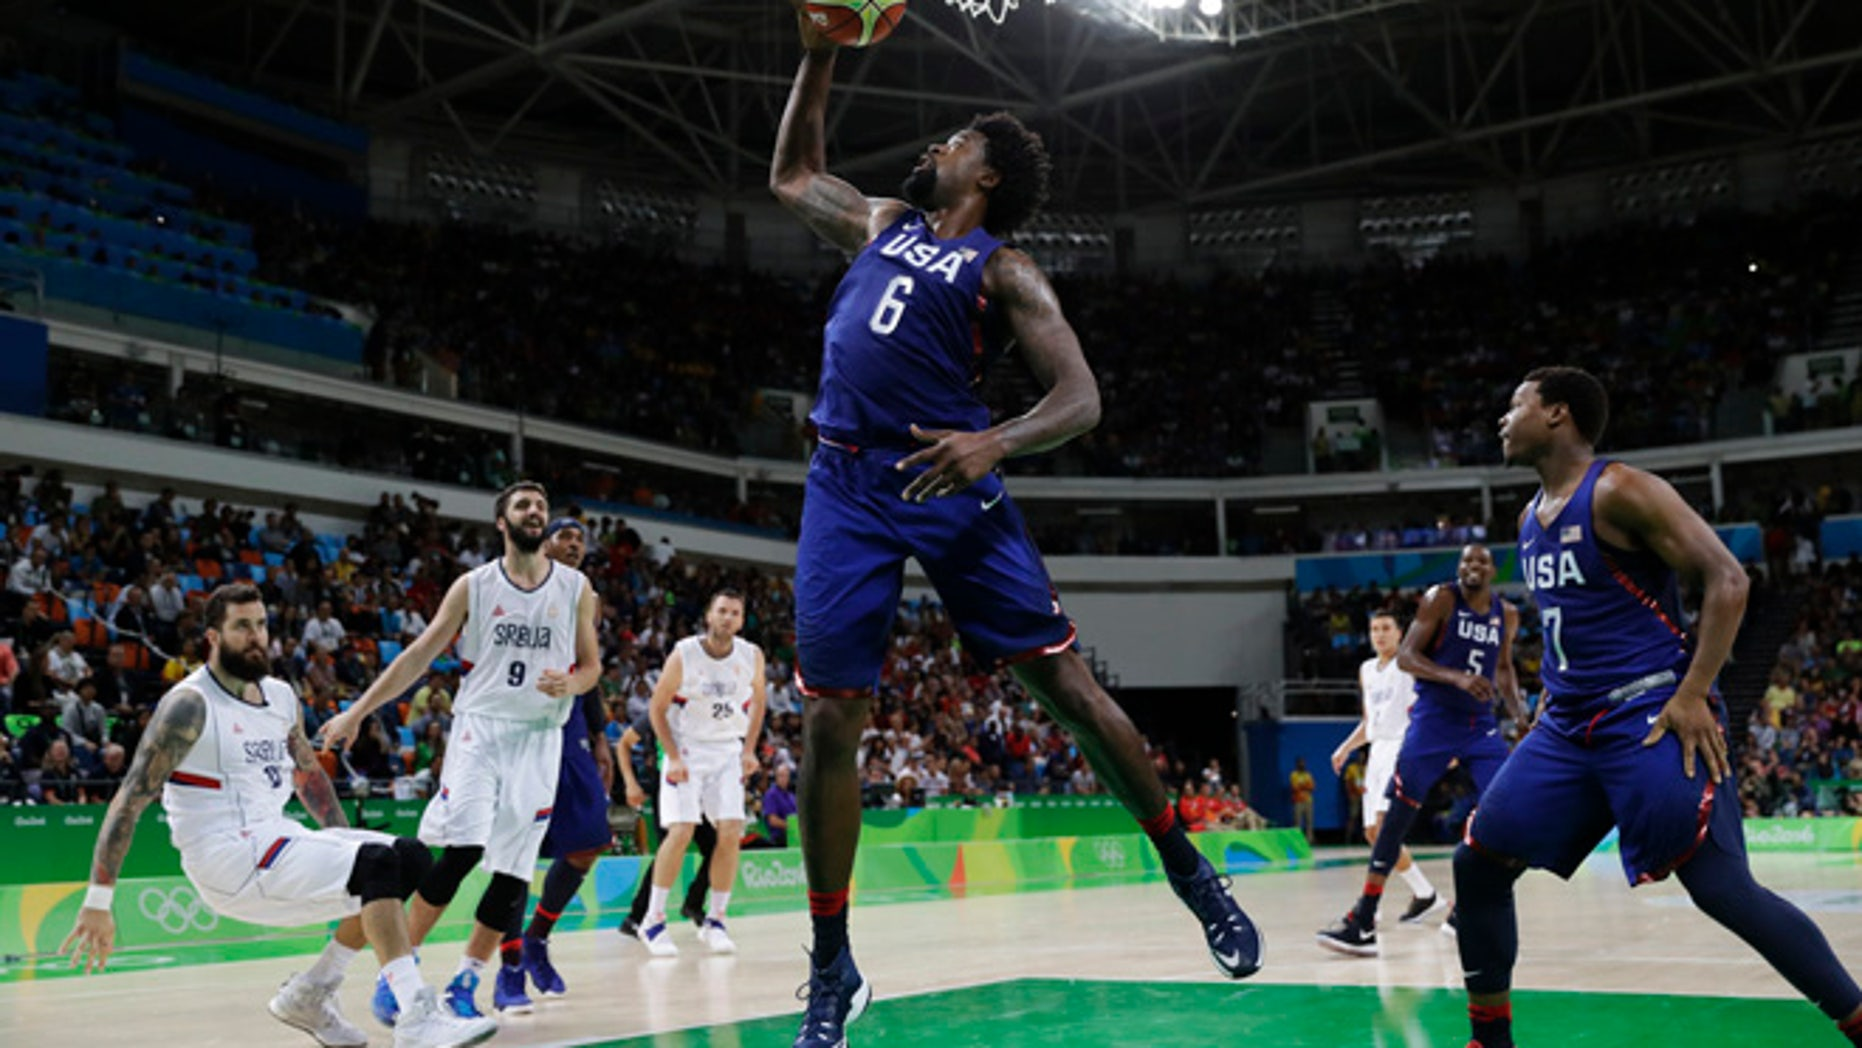 United States' DeAndre Jordan (6) pulls in a rebound against Serbia during the men's gold medal basketball game at the 2016 Summer Olympics in Rio de Janeiro, Brazil, Sunday, Aug. 21, 2016.